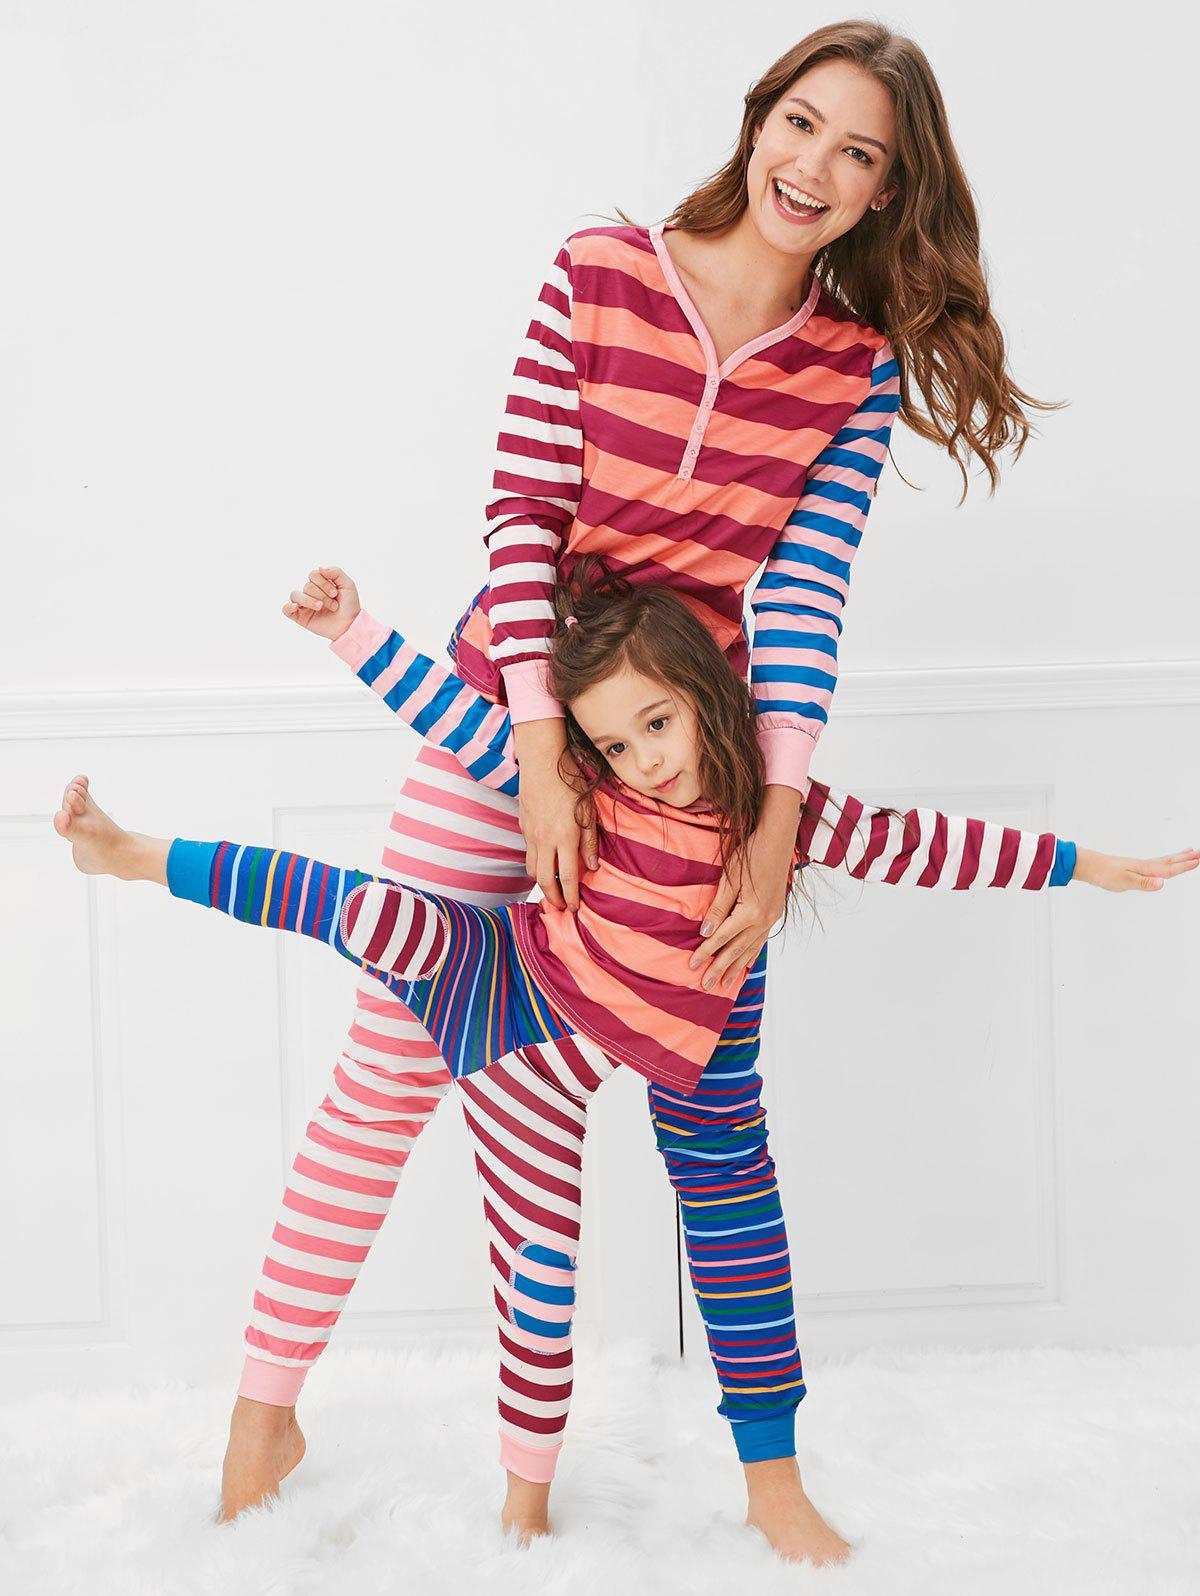 Online Christmas Contrast Striped Print Mom Kids Pajama Set